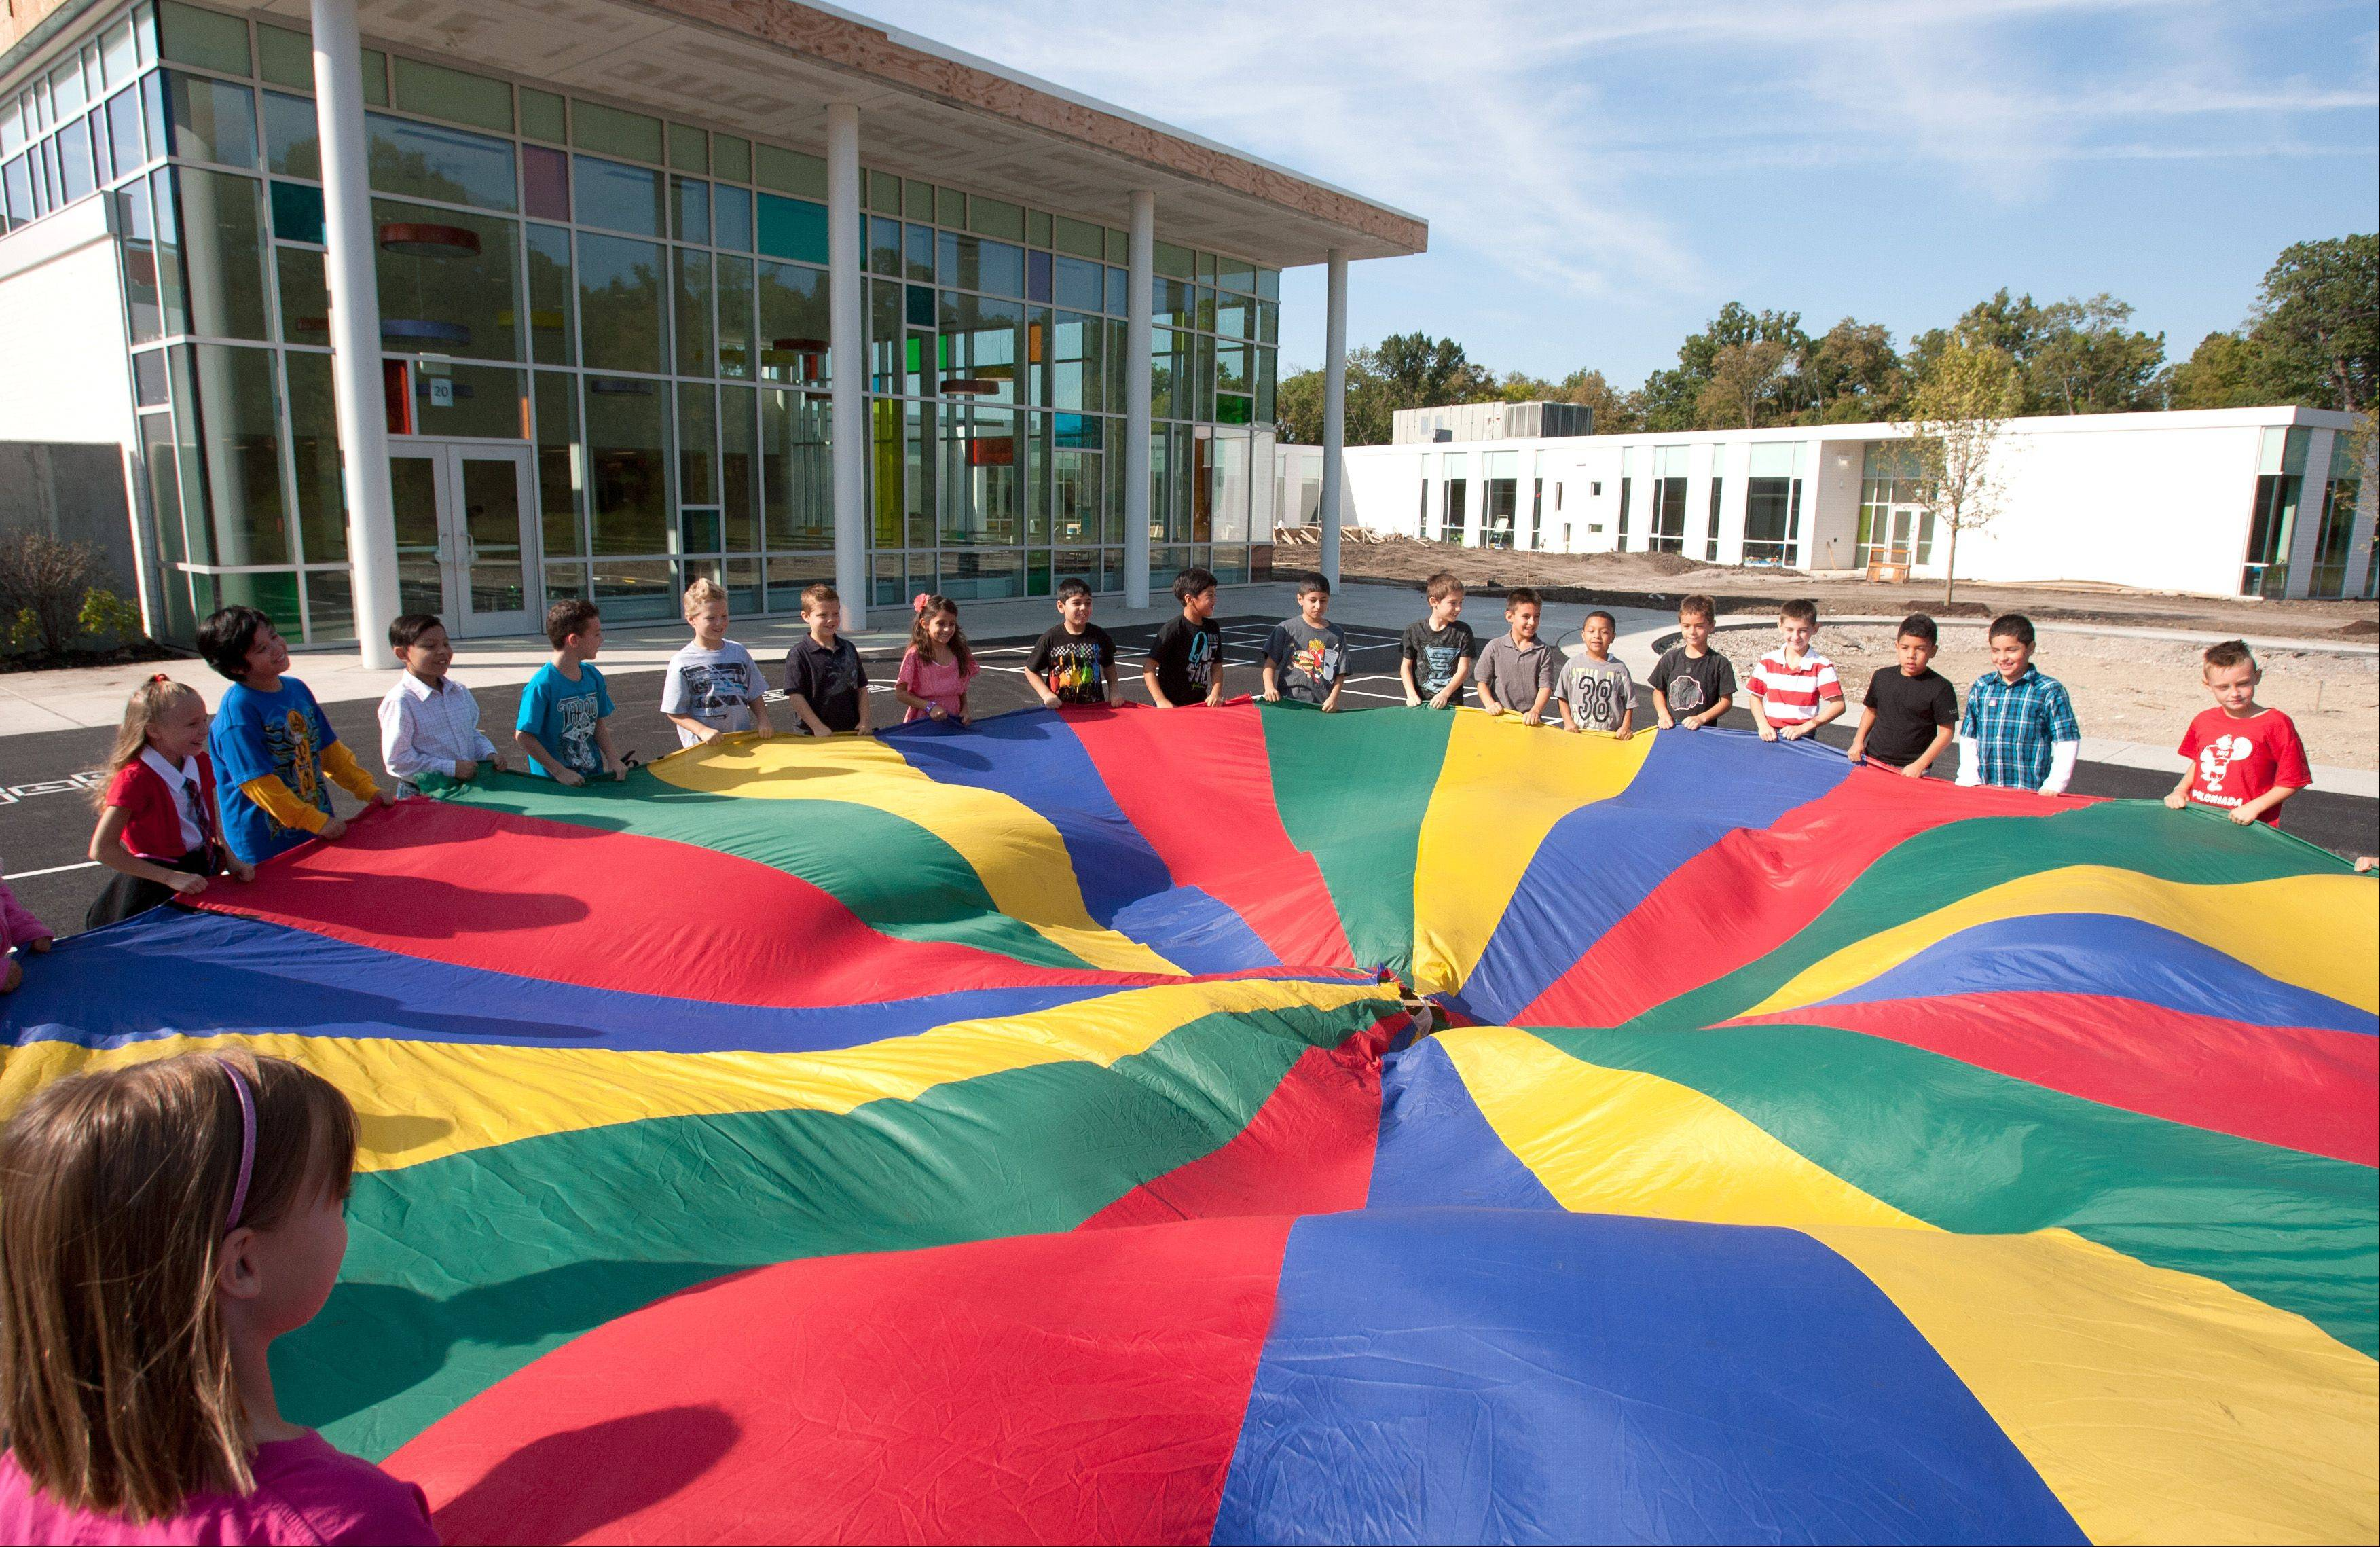 Physical education instructor Brendan Breault's class performs teamwork exercises in front of the newly constructed Johnson School addition during the first day of classes.